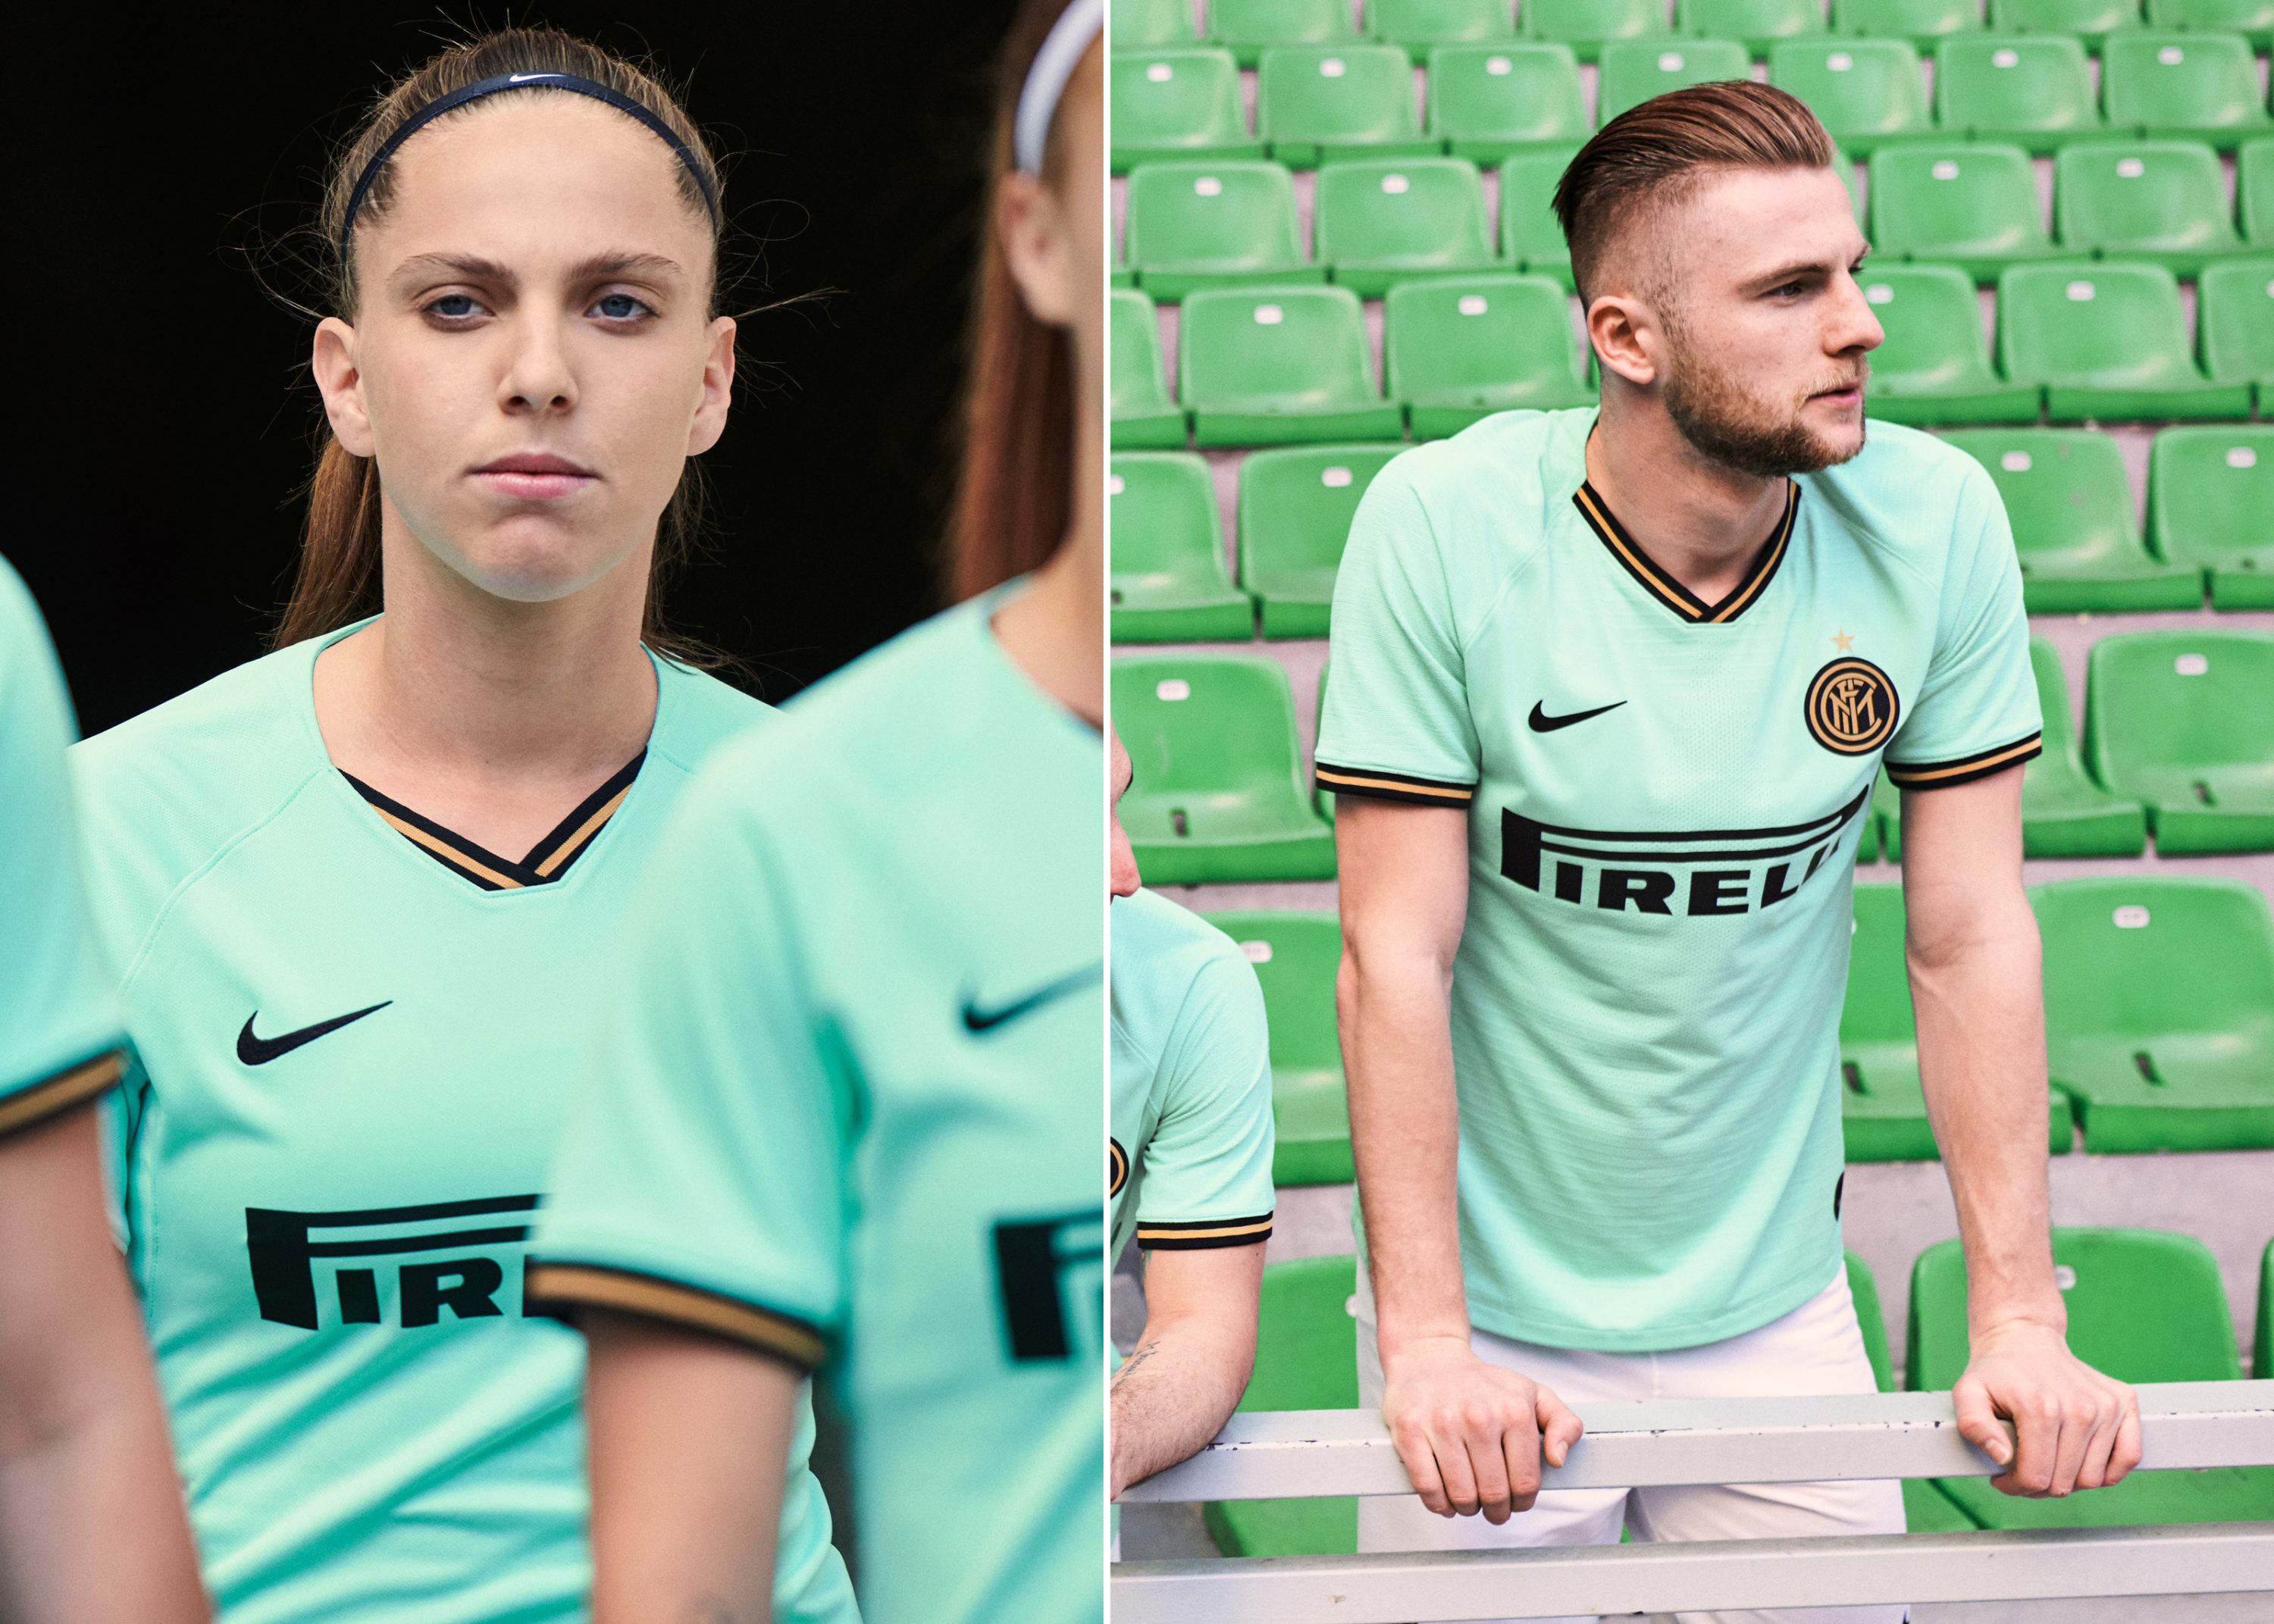 premium selection 57e2a 277c8 Nike Splash Inter Milan's 2019-20 Away Kit in Mint Fresh ...